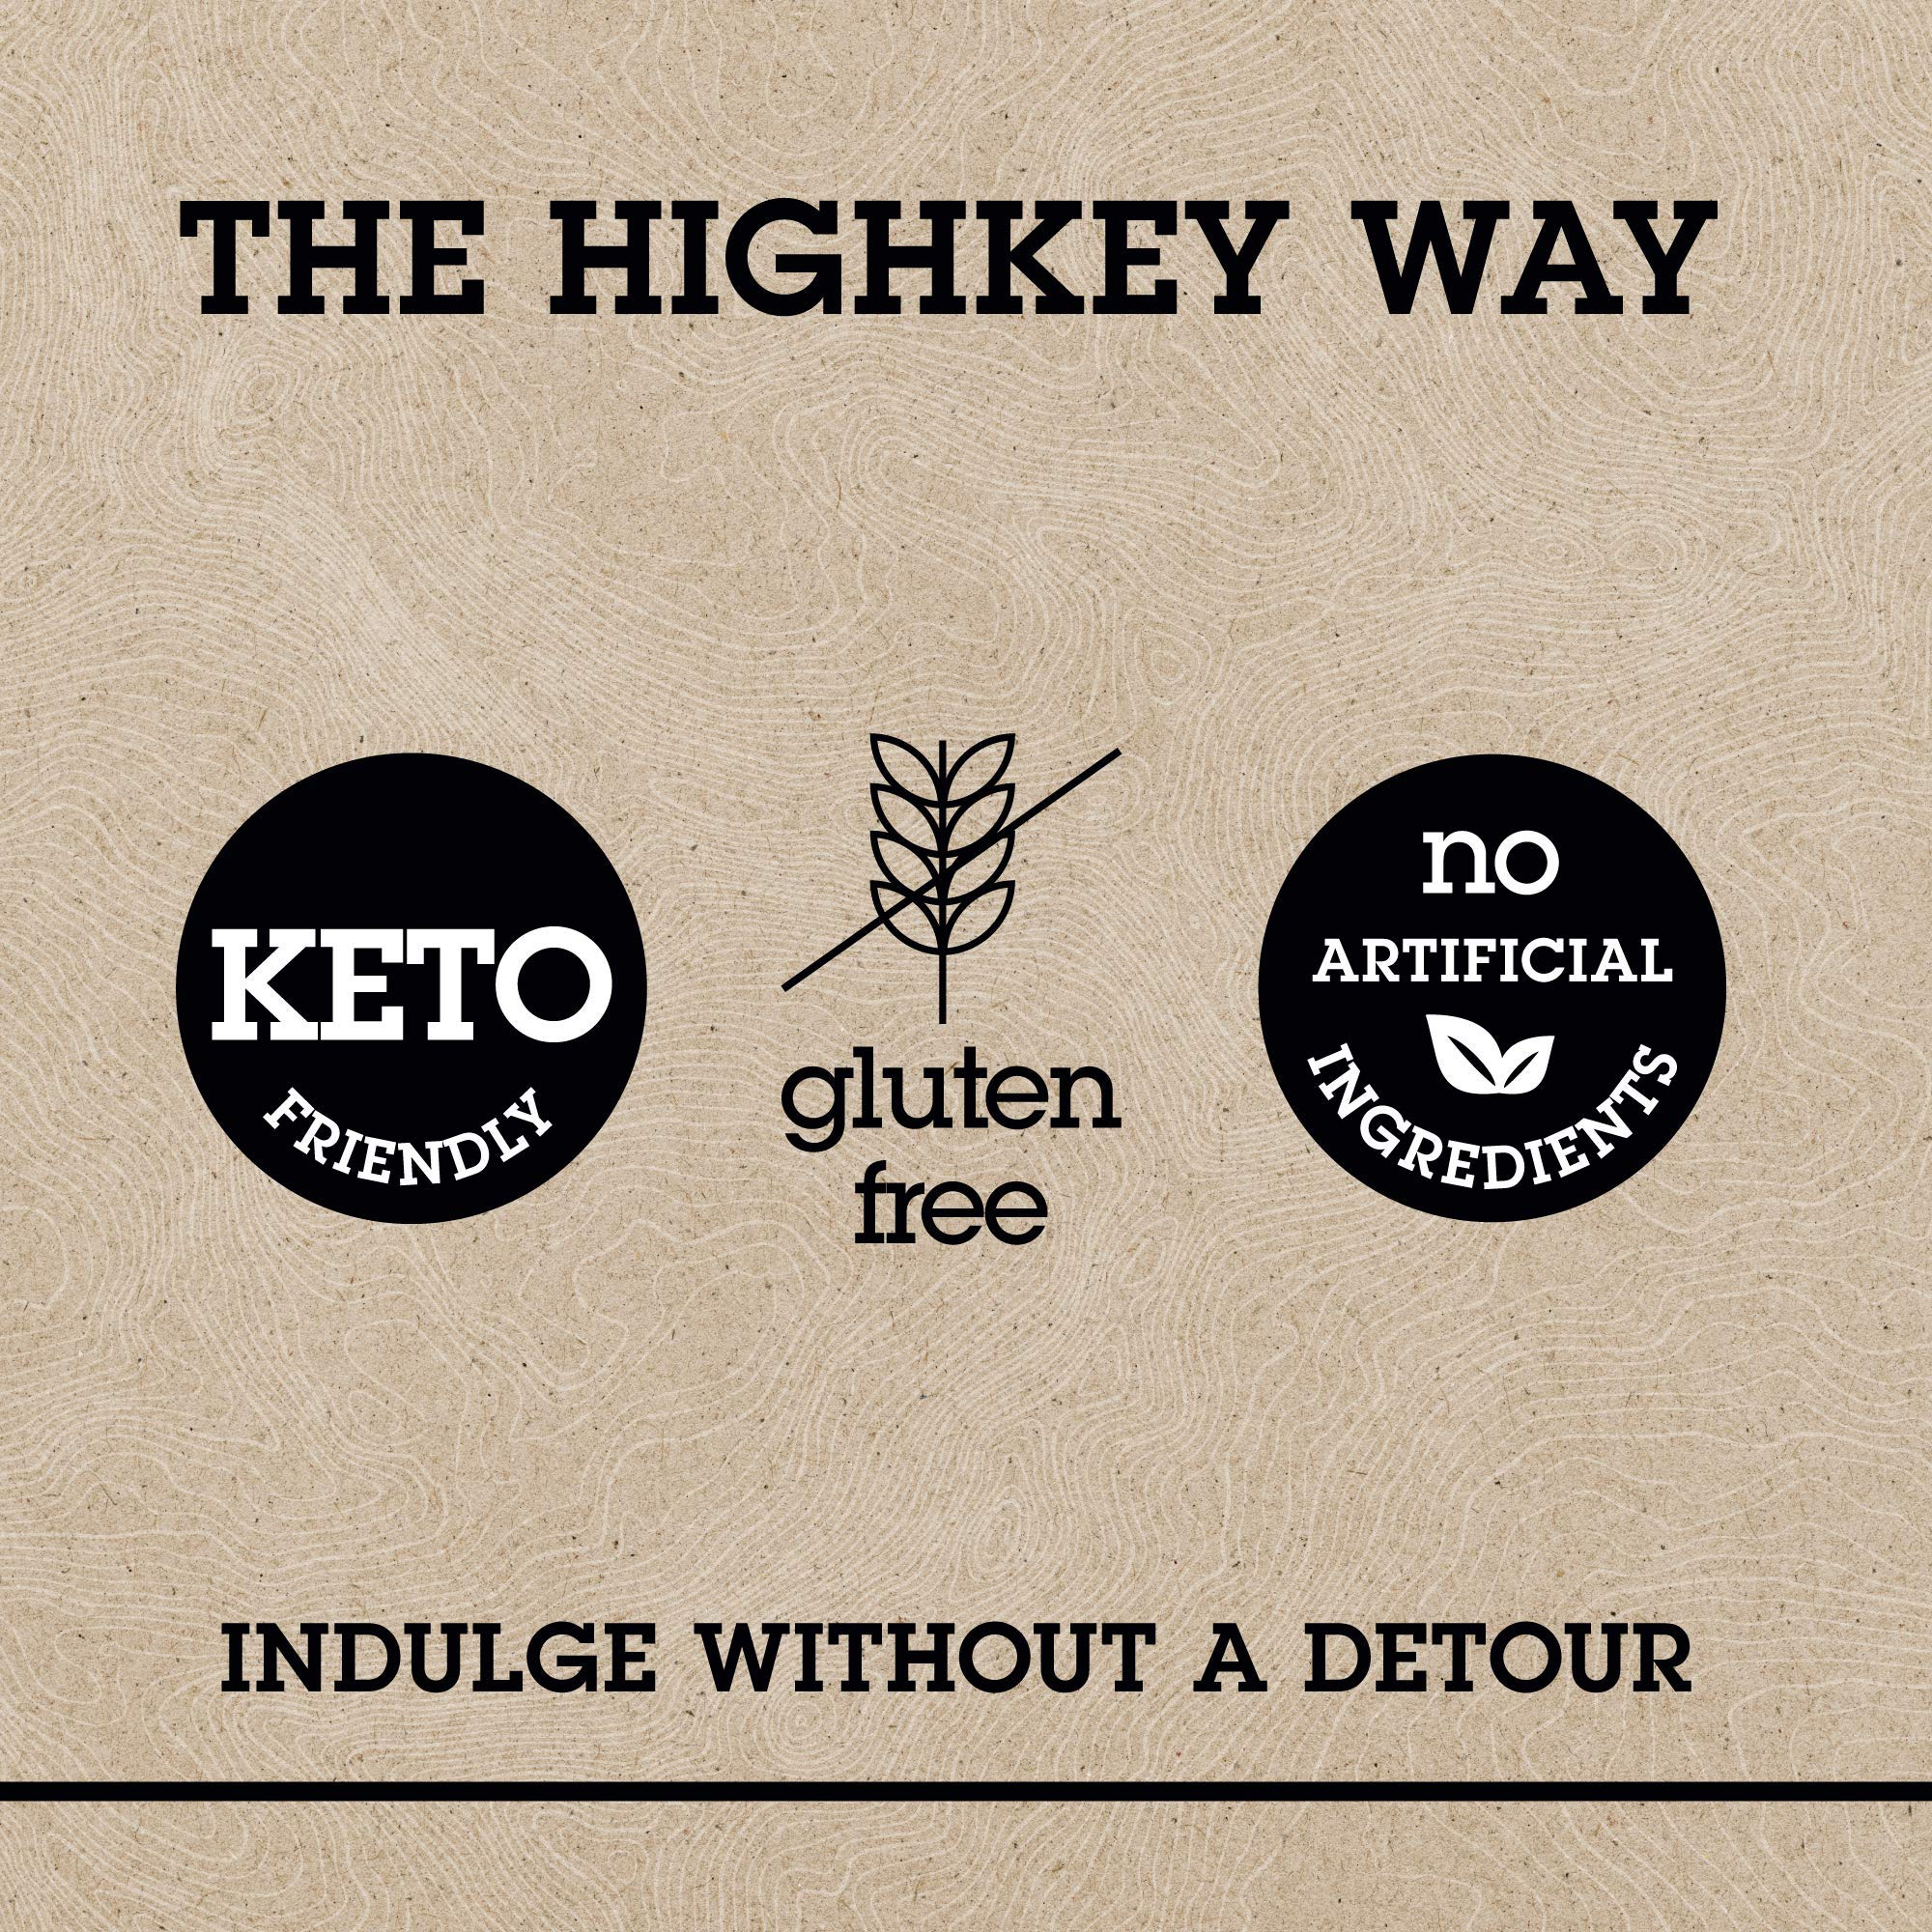 HighKey Snacks Keto Instant Hot Cereal Breakfast - Gluten & Grain Free - Perfect Ketogenic Friendly Food - Low Carb, High Protein Products - Good for Desserts, Atkins and Diabetic Diets - 9oz by HighKey Snacks (Image #4)